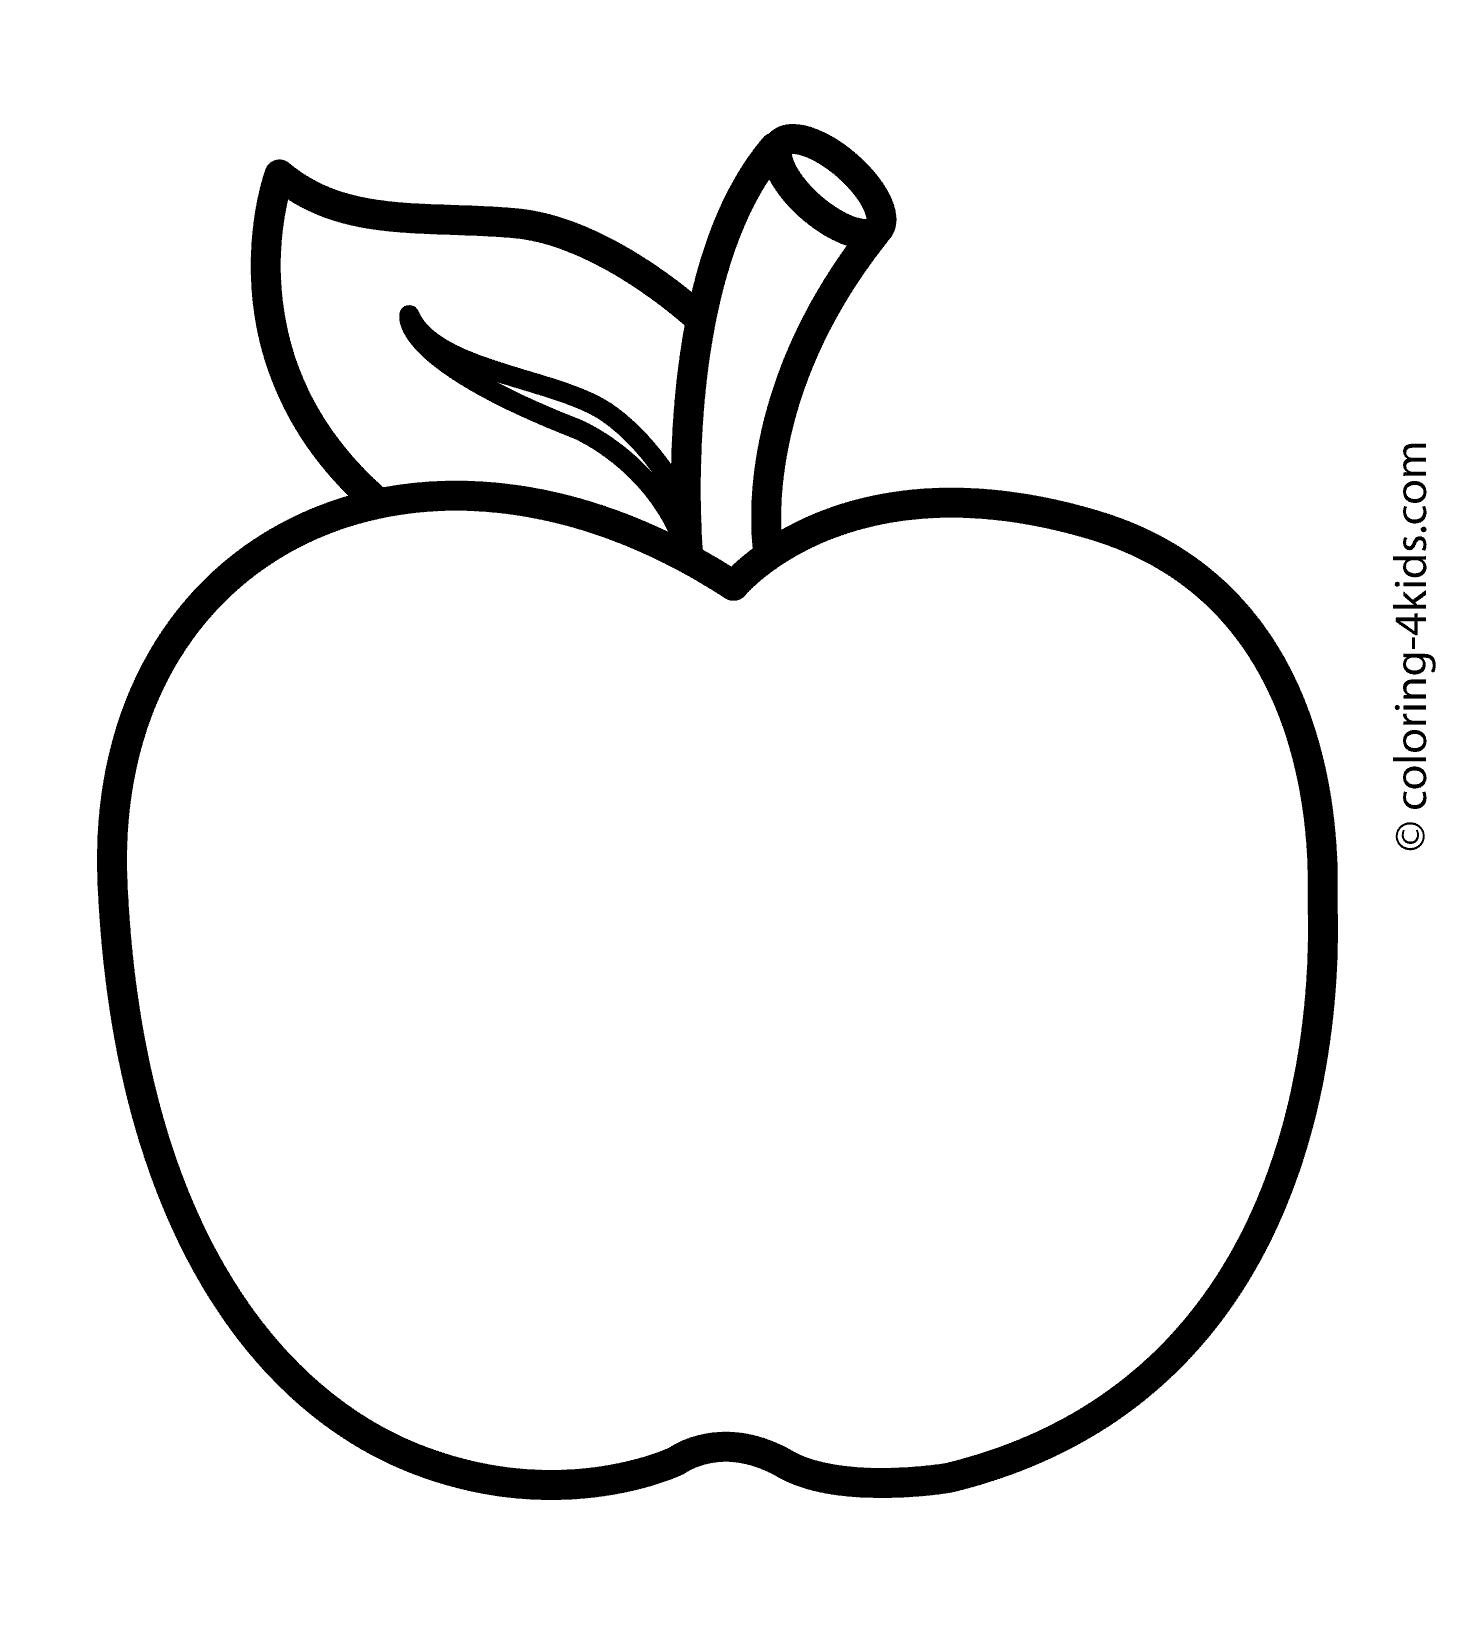 coloring apple apple coloring pages fruit 101 coloring apple coloring